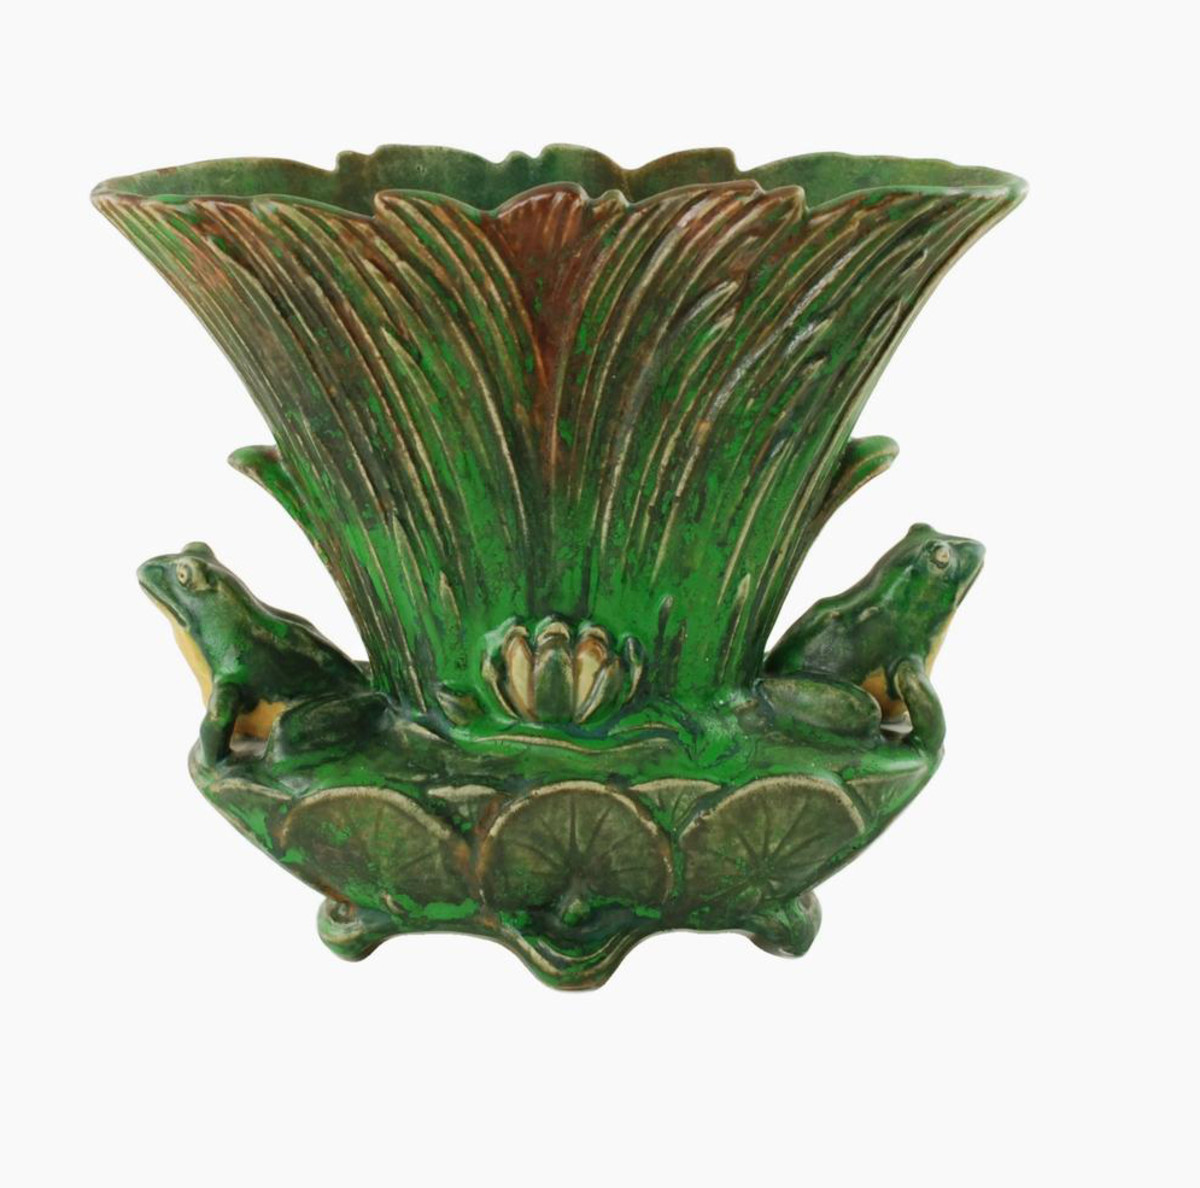 The authentic 1920s' fan-shaped Coppertone vase, with a series of overlapping reeds and featuring two lifelike dimensional frogs that are seated at either side of the reeds. The front and back of the piece bear molded cream-colored water lily flowers located at the center, while the lower portion is decorated in overlapping  lily pads. The piece is elevated on four feet; $1,250.